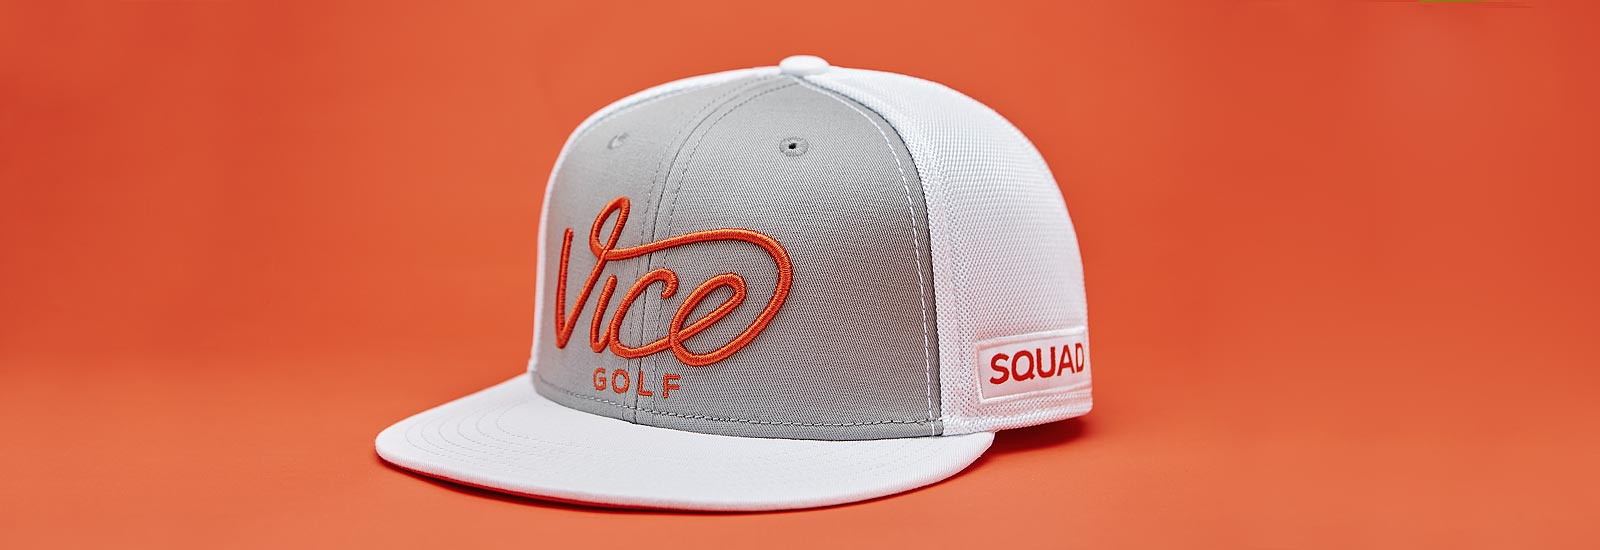 VICE Golf Squad Cap - Orange – VICE Golf U S A 3b19af142a2